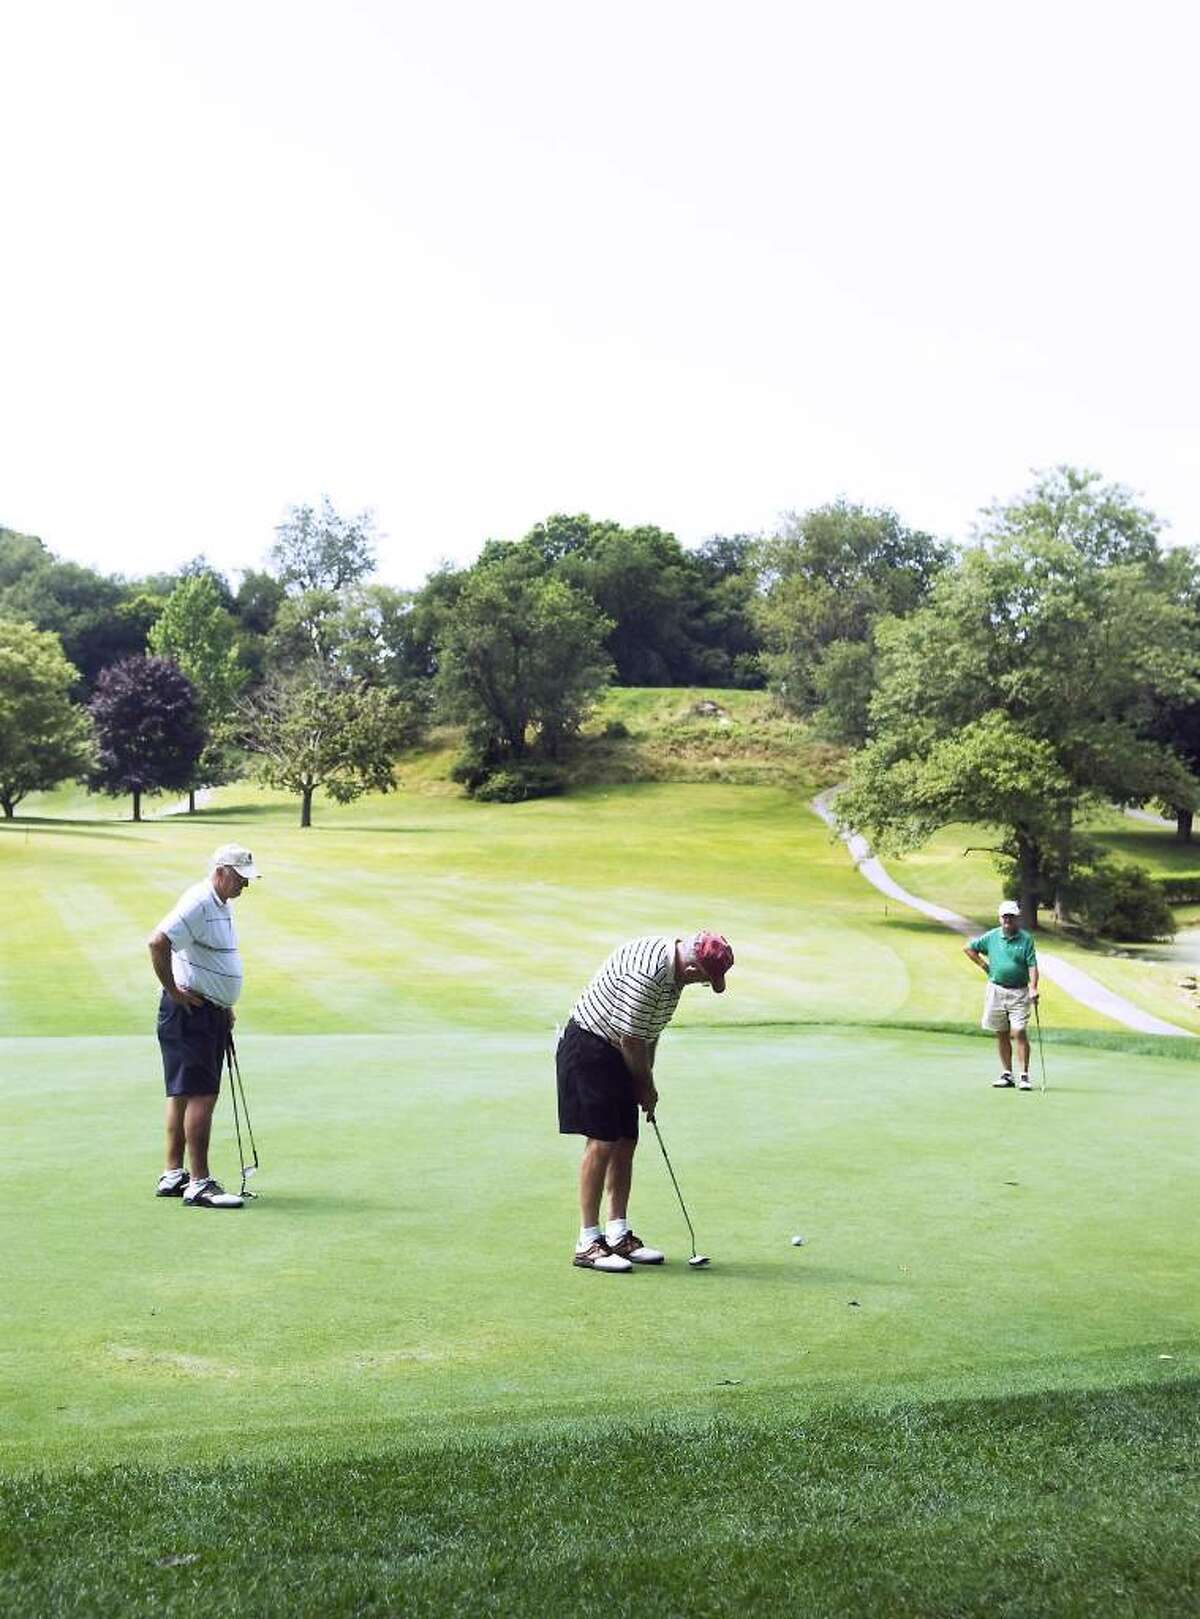 File photo of golfers as they tee off on the 13th hole at E. Gaynor Brennan Municipal Golf Course during the summer of 2009. Before taking a swing, donning those running shoes or planning a hike, it is important to make sure those muscles are ready for the motion, after a long winter's nap.